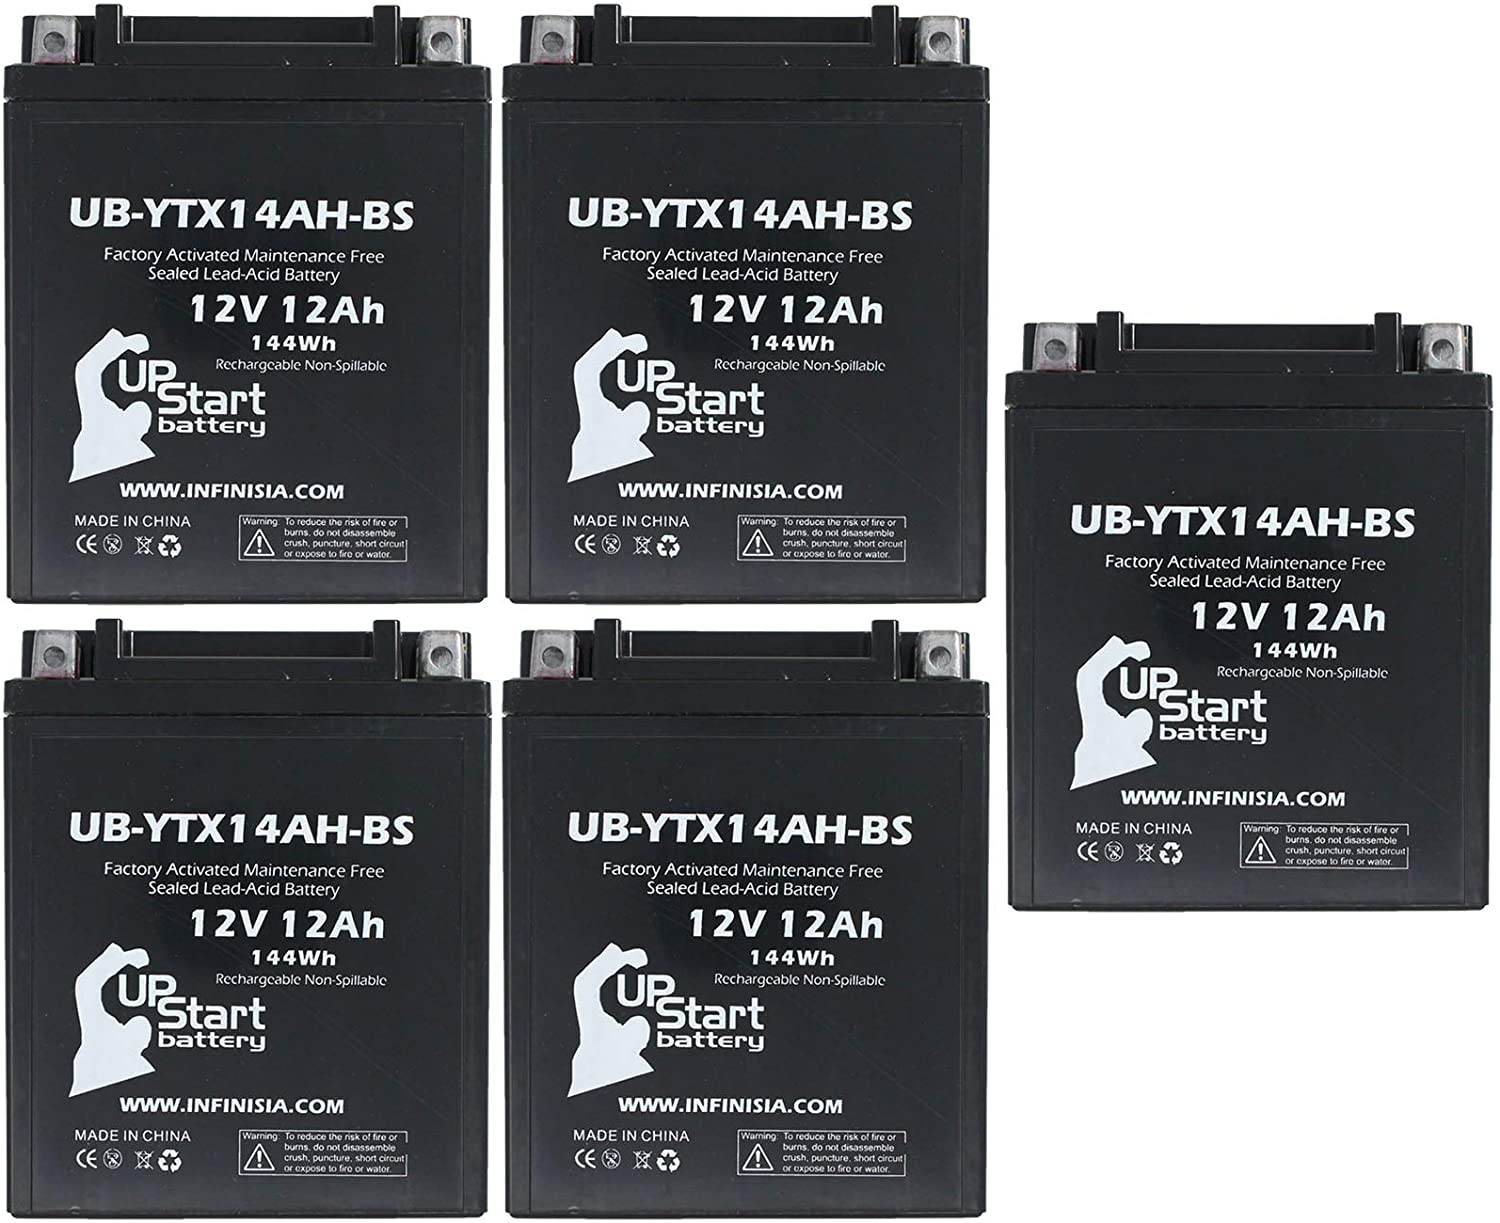 5-Pack UB-YTX14AH-BS Battery Replacement for 1998 Arctic Cat Panther 440 500 CC Snowmobile - Factory Activated, Maintenance Free, Motorcycle Battery - 12V, 12AH, UpStart Battery Brand